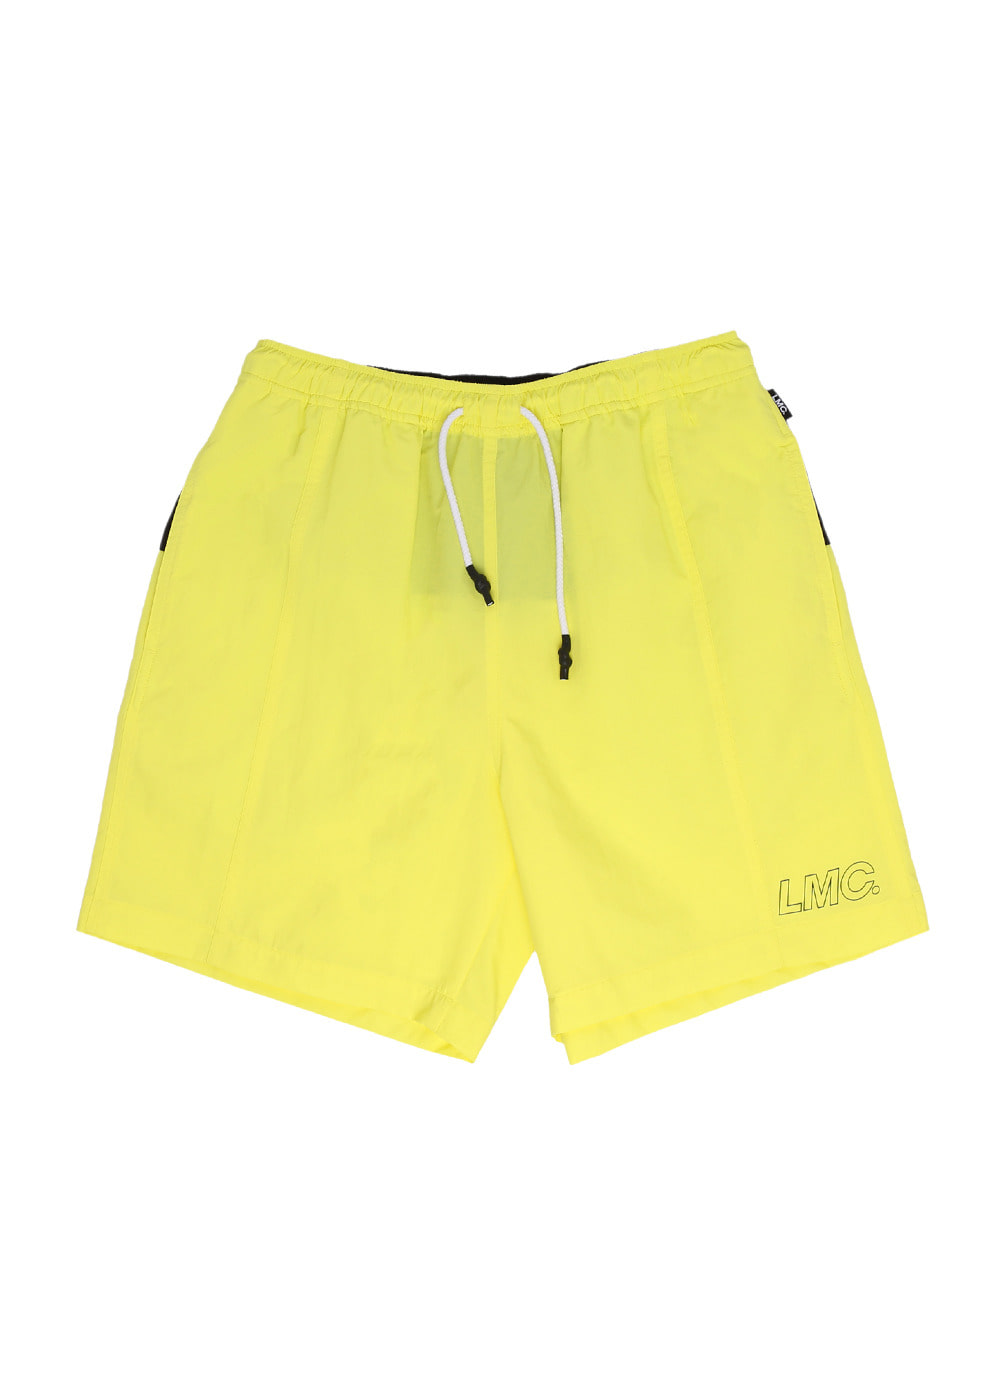 LMC FN BLOCK TEAM SHORTS lemon yellow